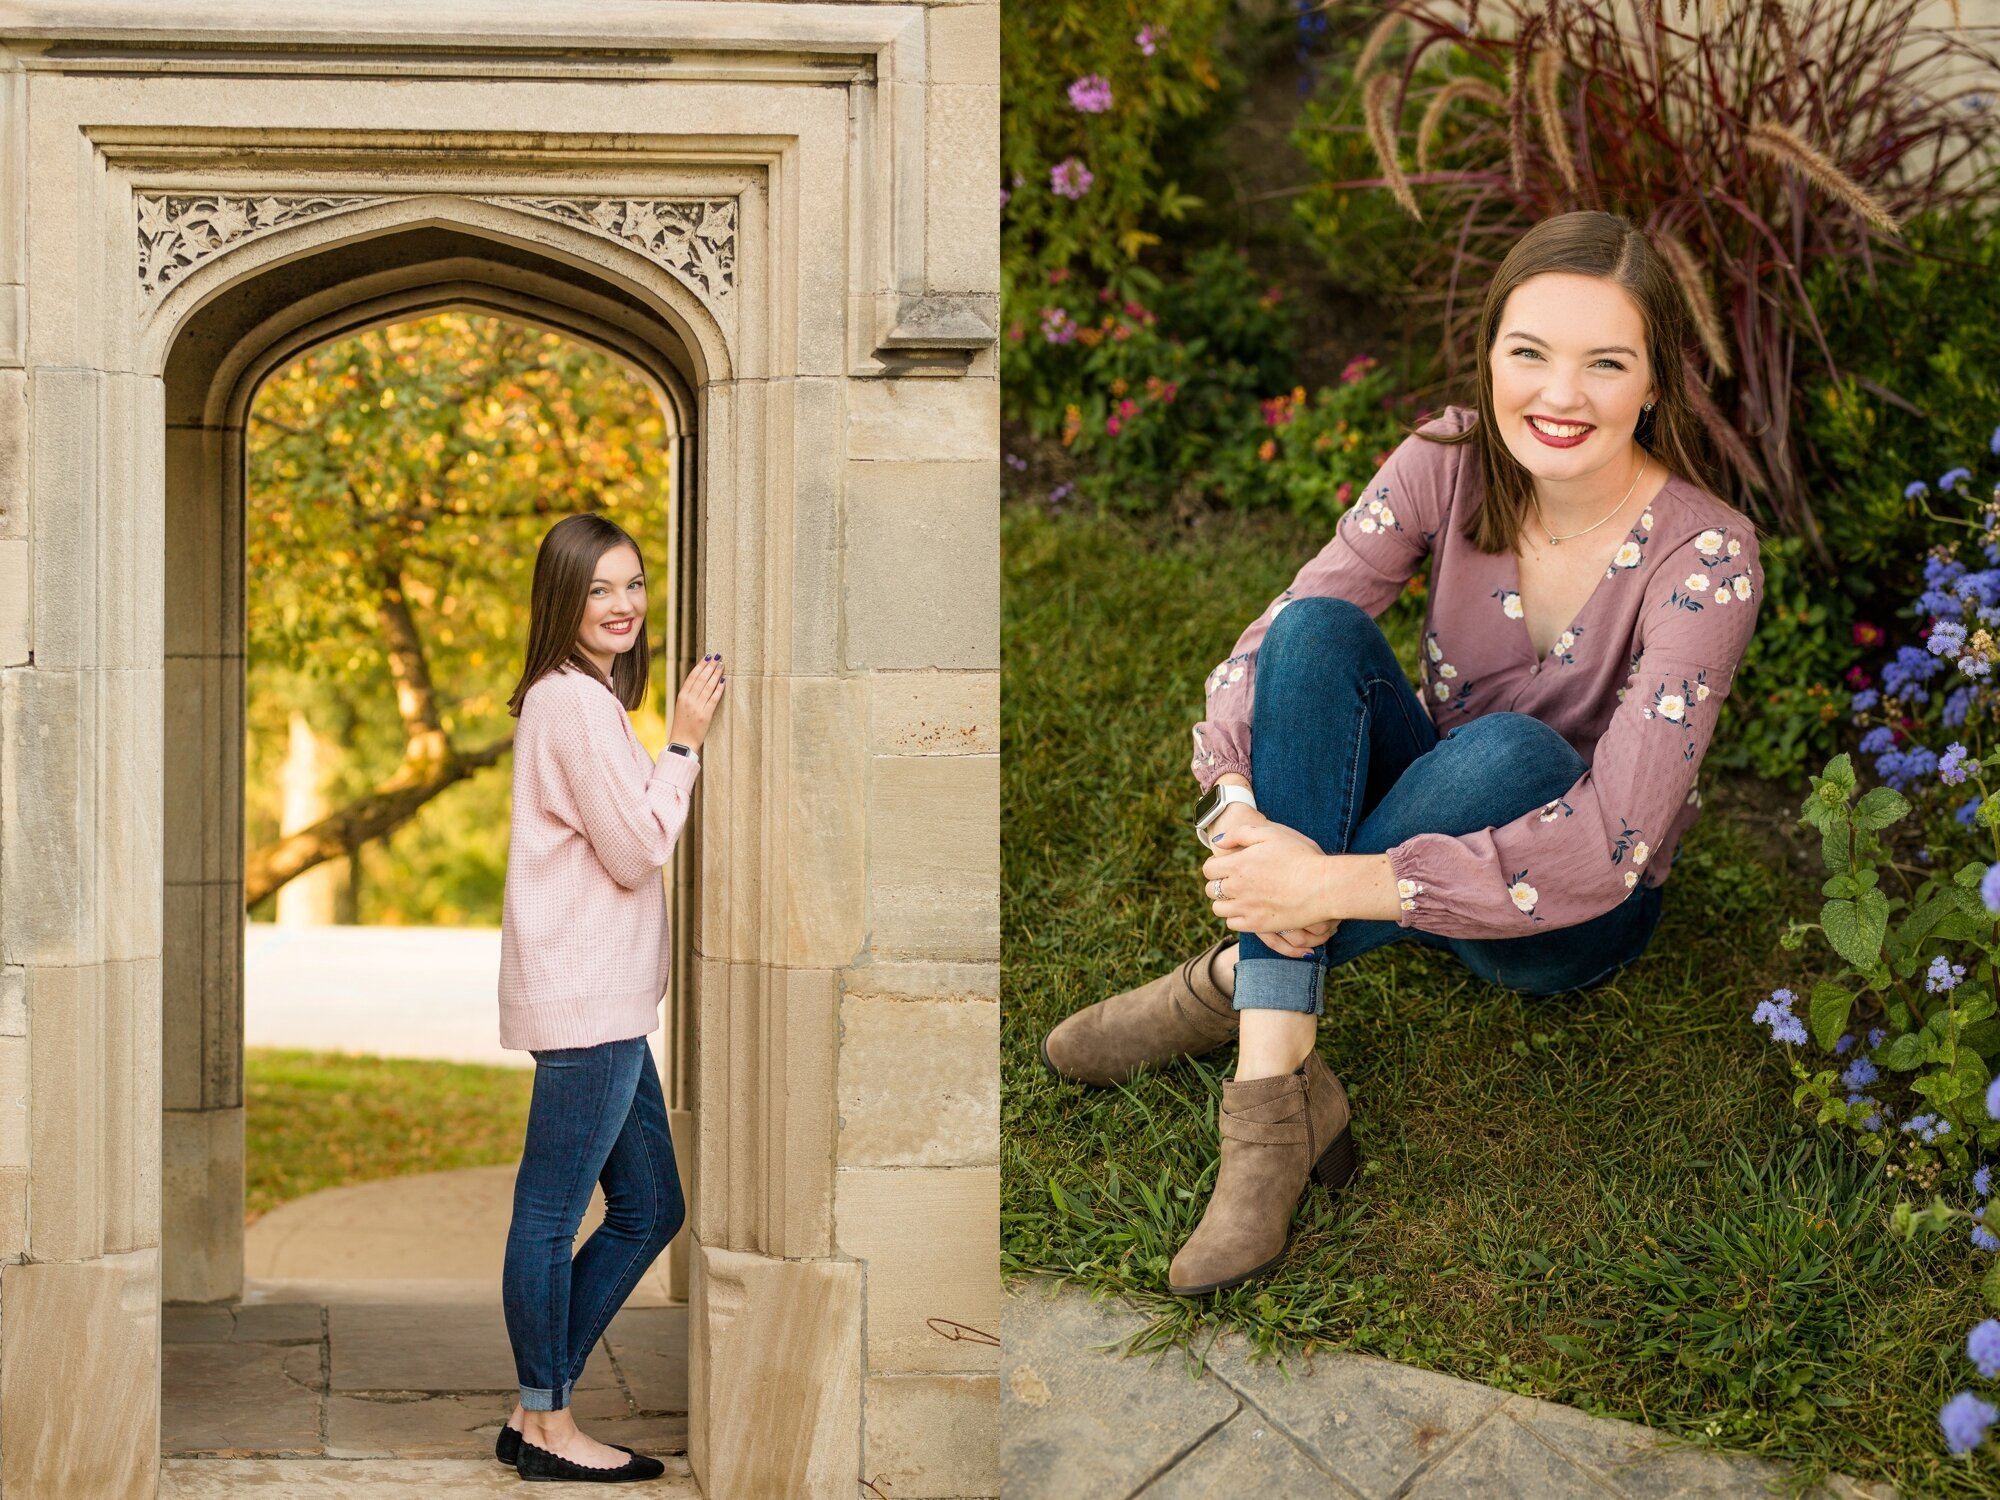 hartwood acres senior photos, pittsburgh senior photographer, seneca valley senior photographers, location ideas for senior pictures pittsburgh